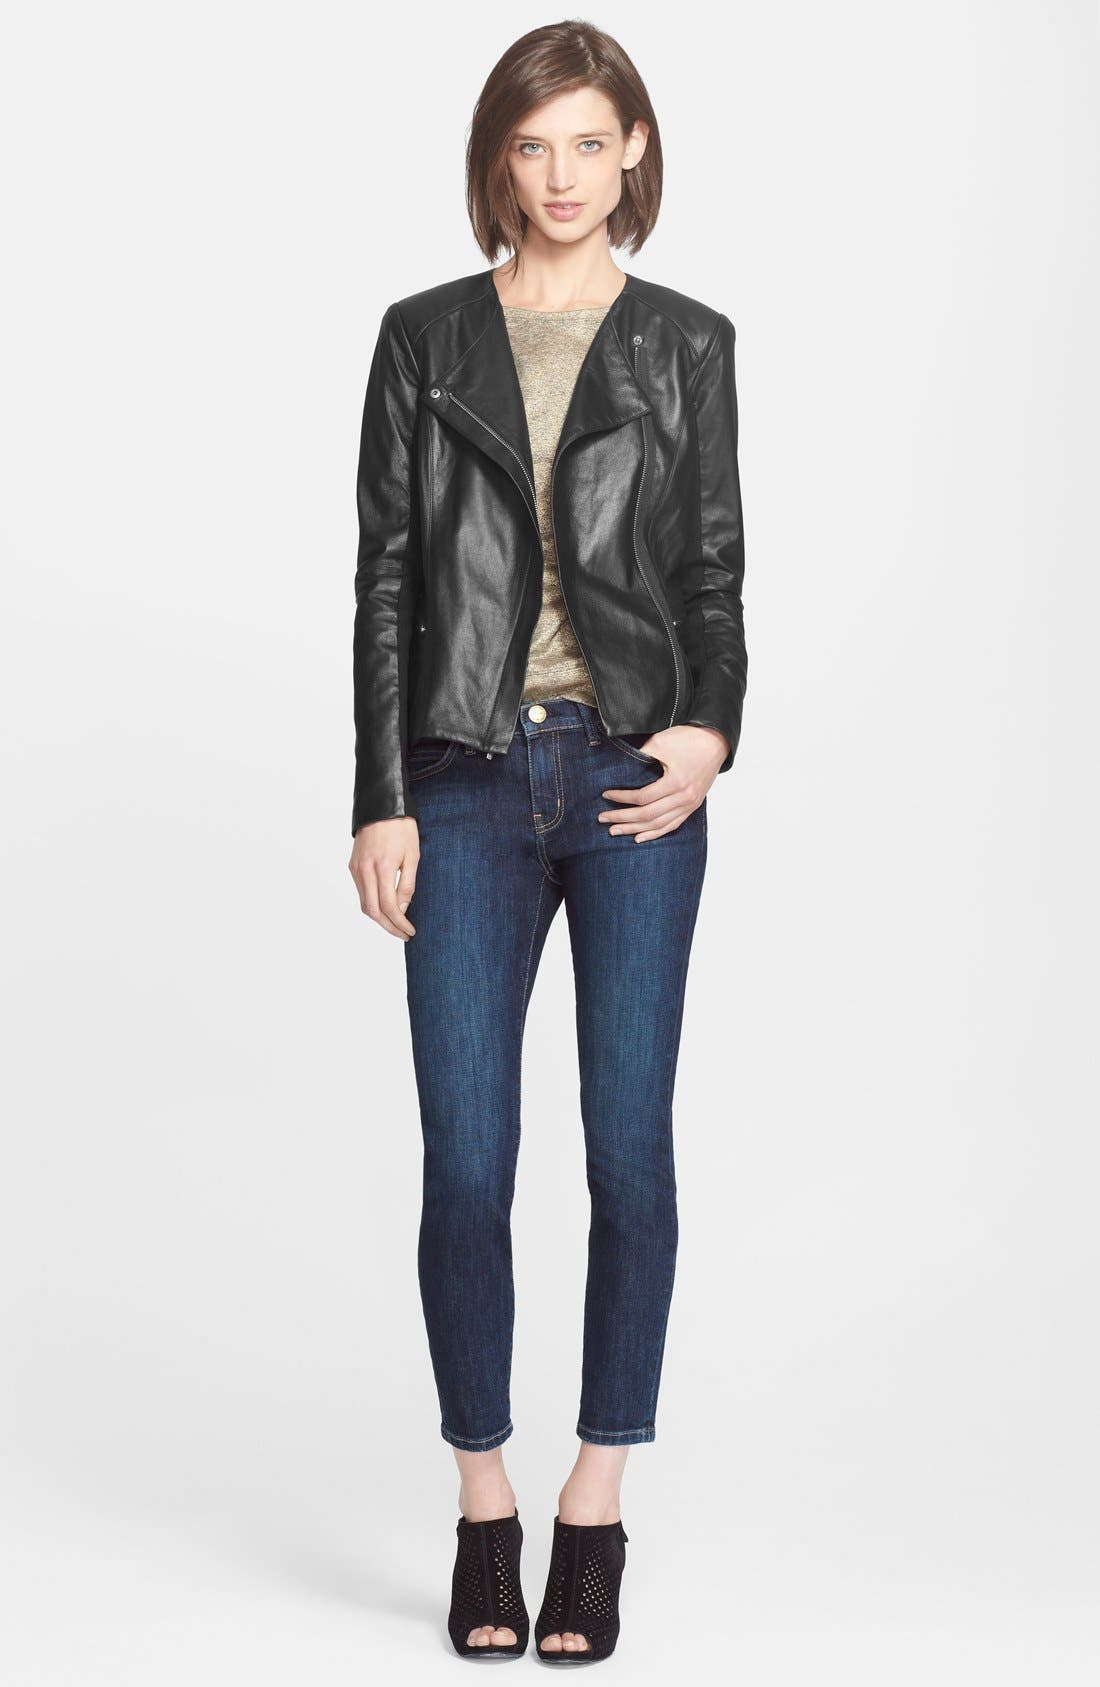 VEDA, 'Aires' Asymmetrical Zip Leather Jacket, Alternate thumbnail 6, color, 001